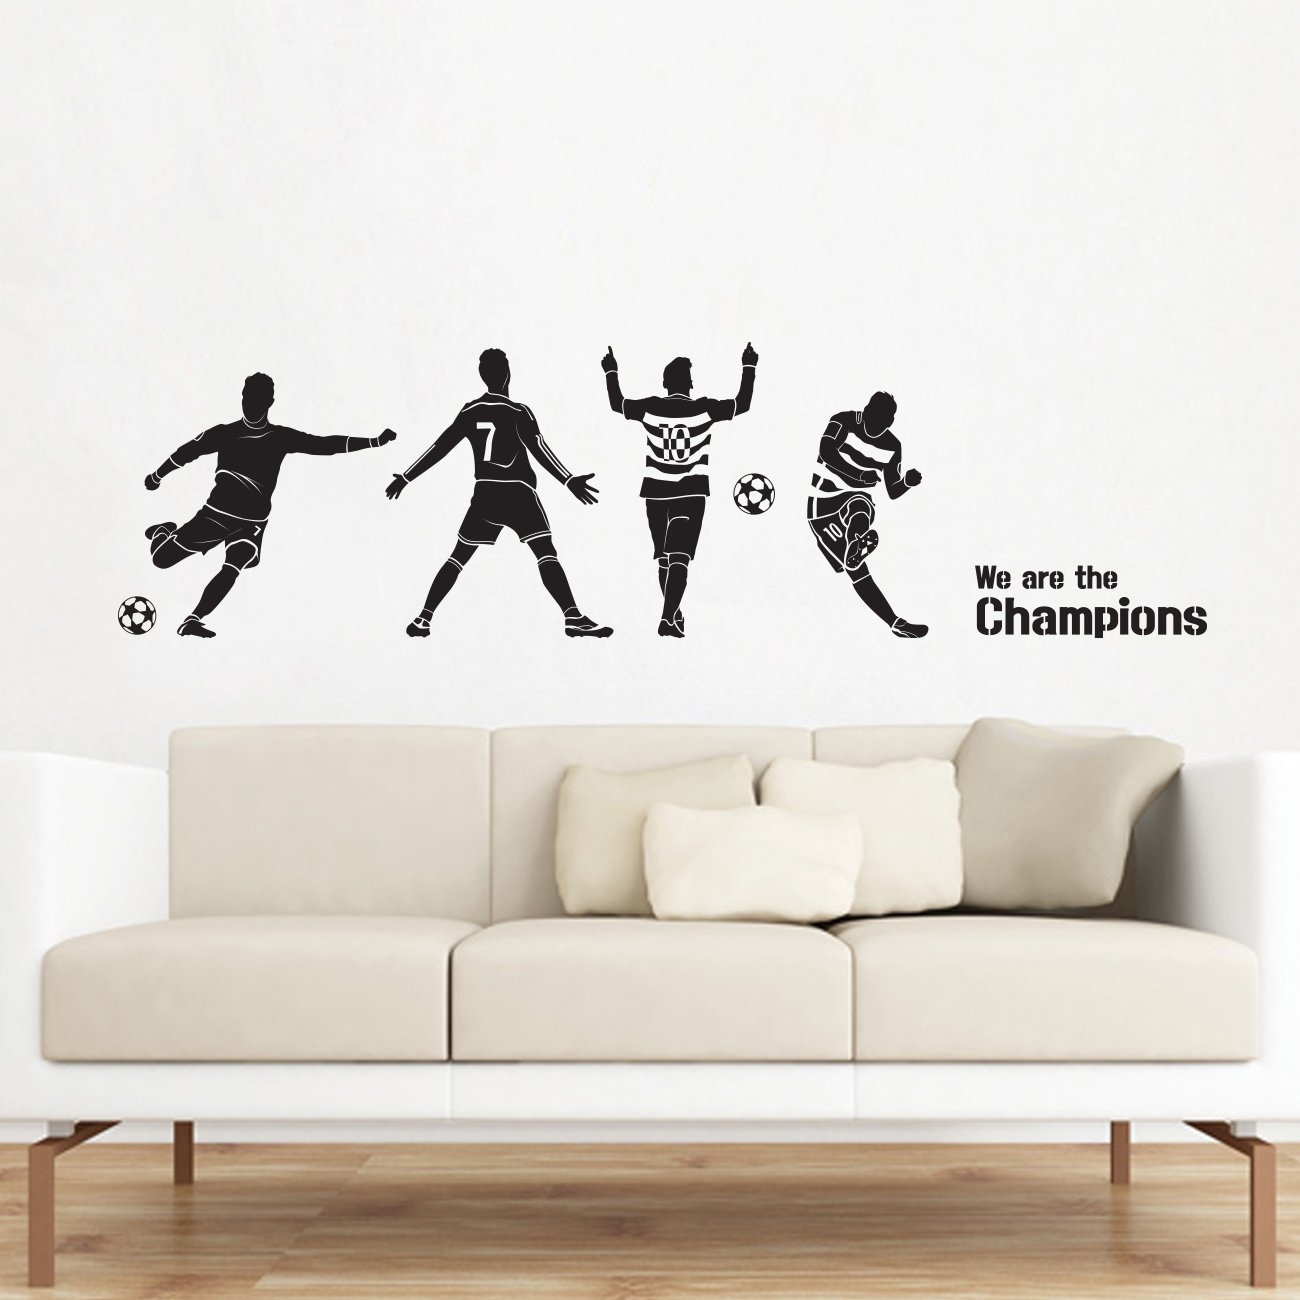 Amazon.com: Decowall DWG-606B Football Champions Graphic ...